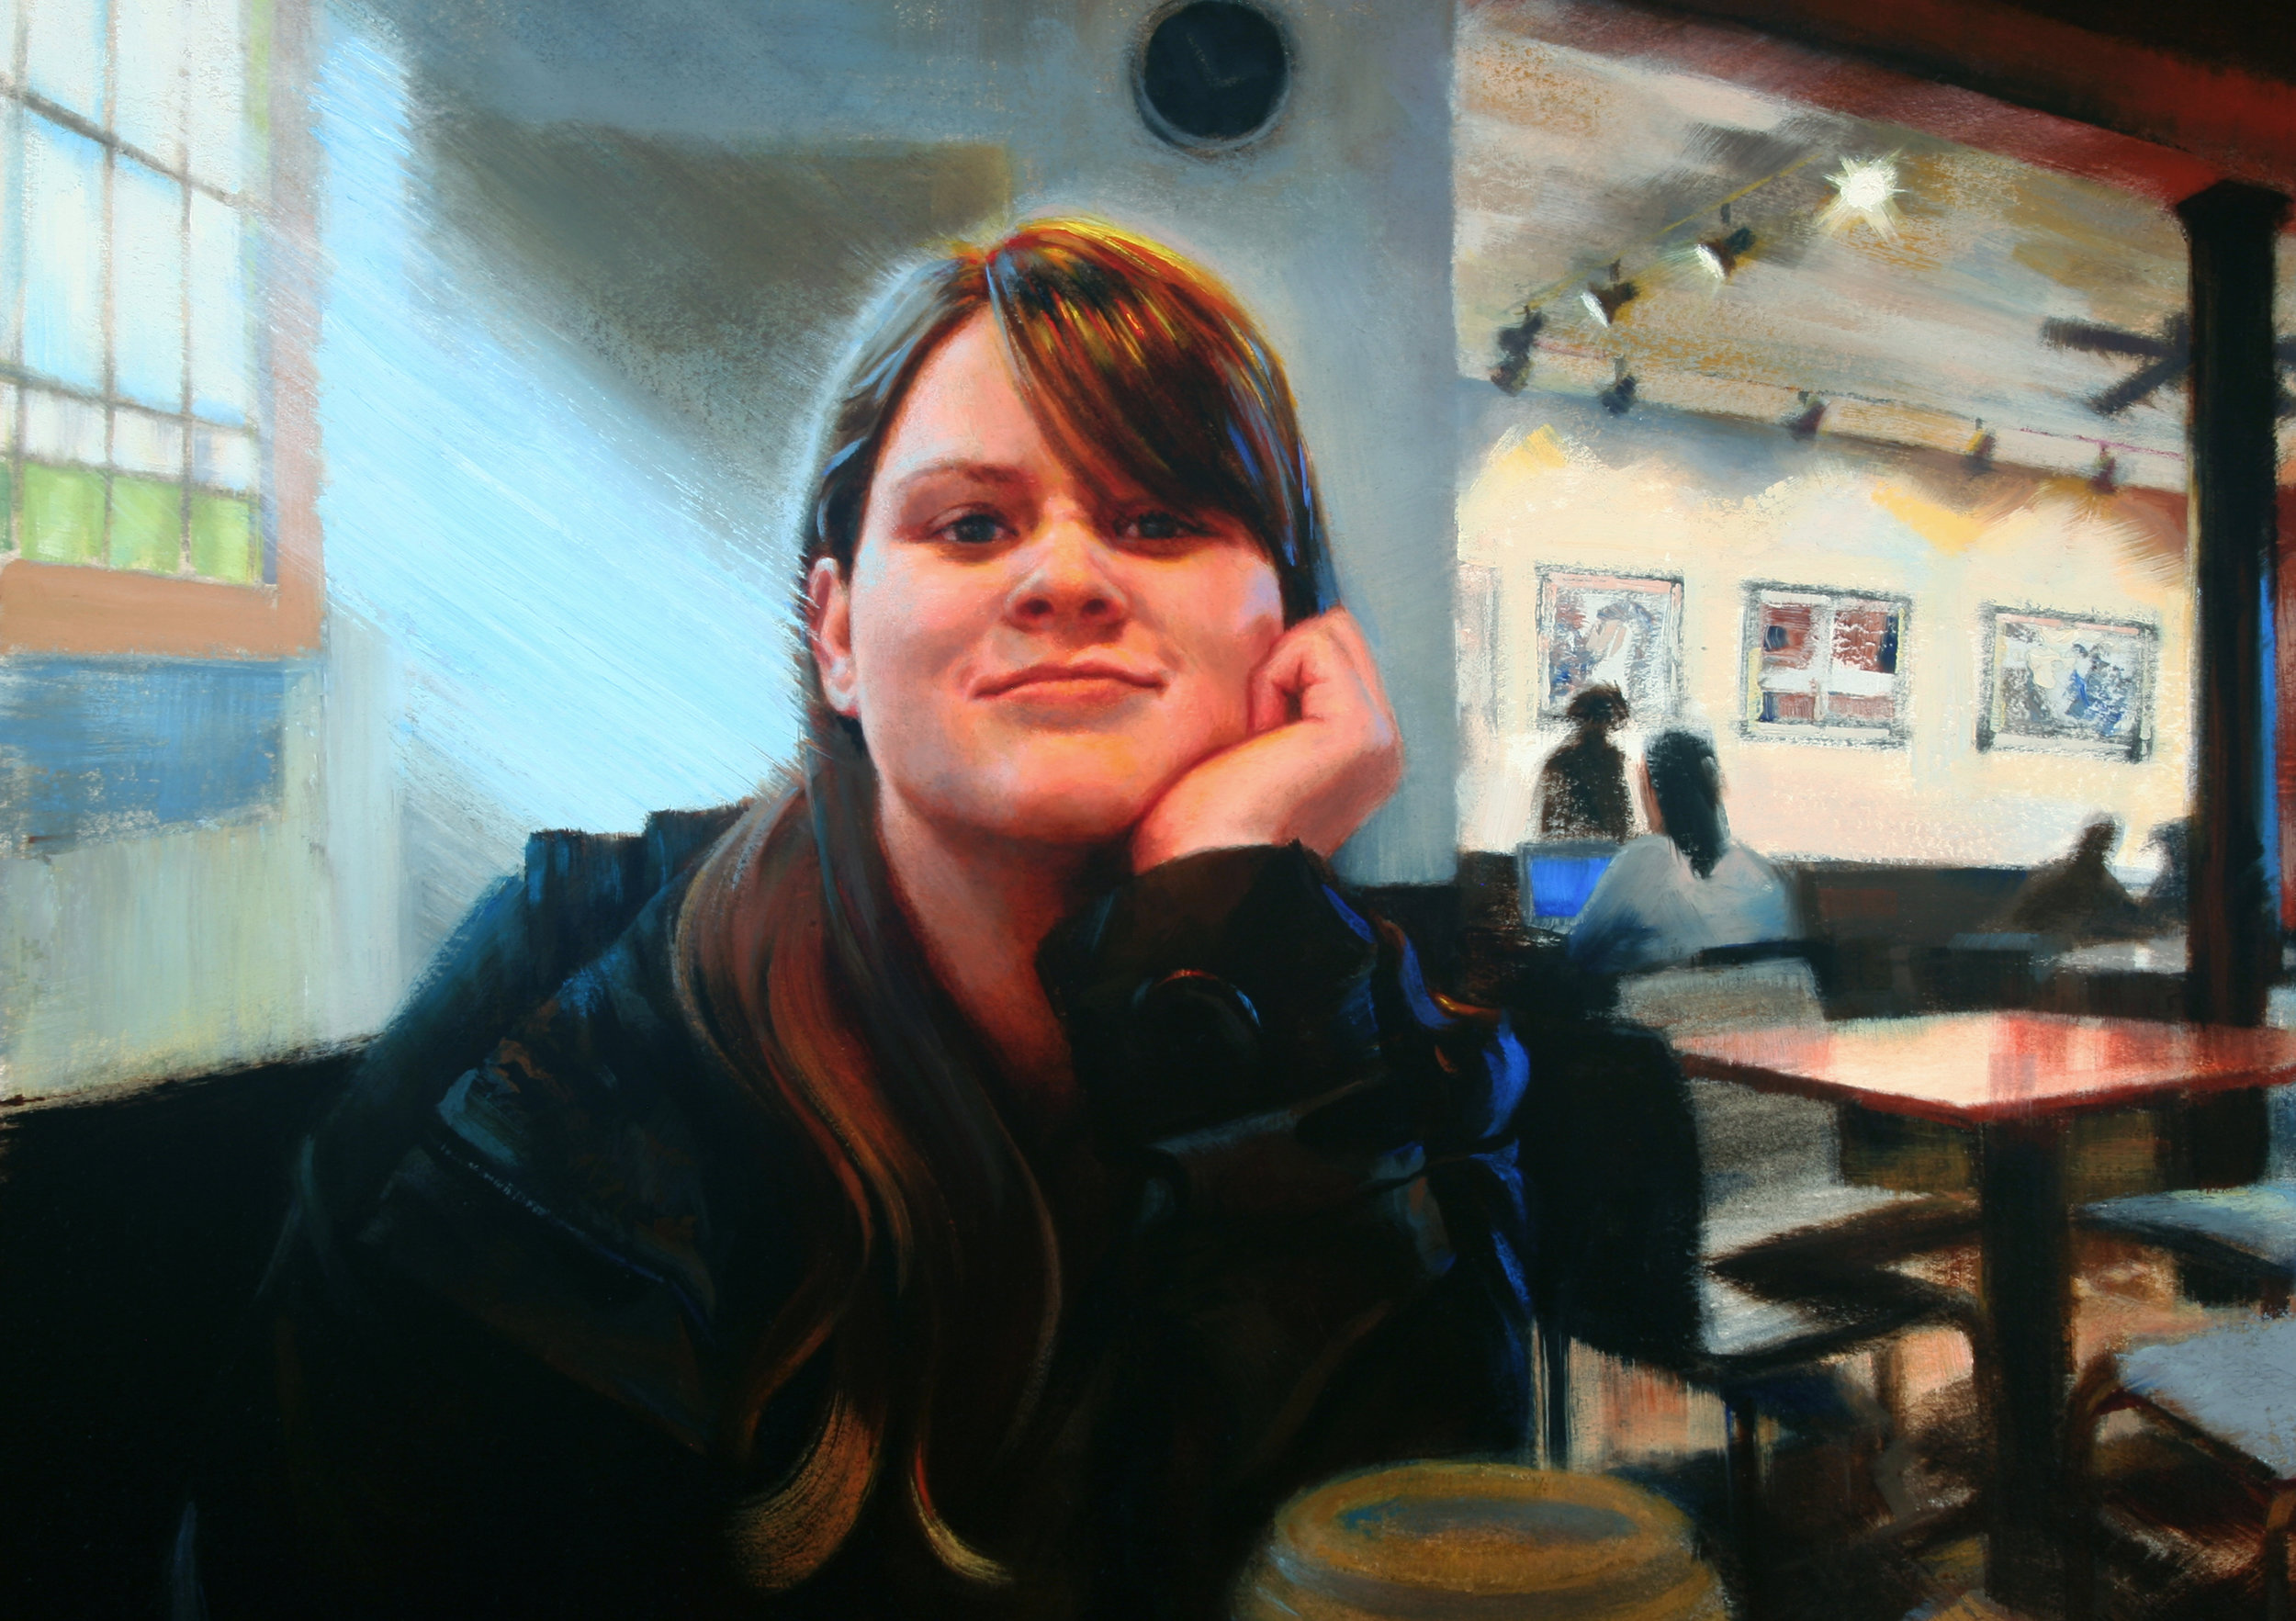 (detail) Falling in love at The Cup - OilThis is a portrait of the artist's daughter, Alyssa, at her favorite coffee shop in her college town. The Cup was a treasured oasis for her. She came here several times to